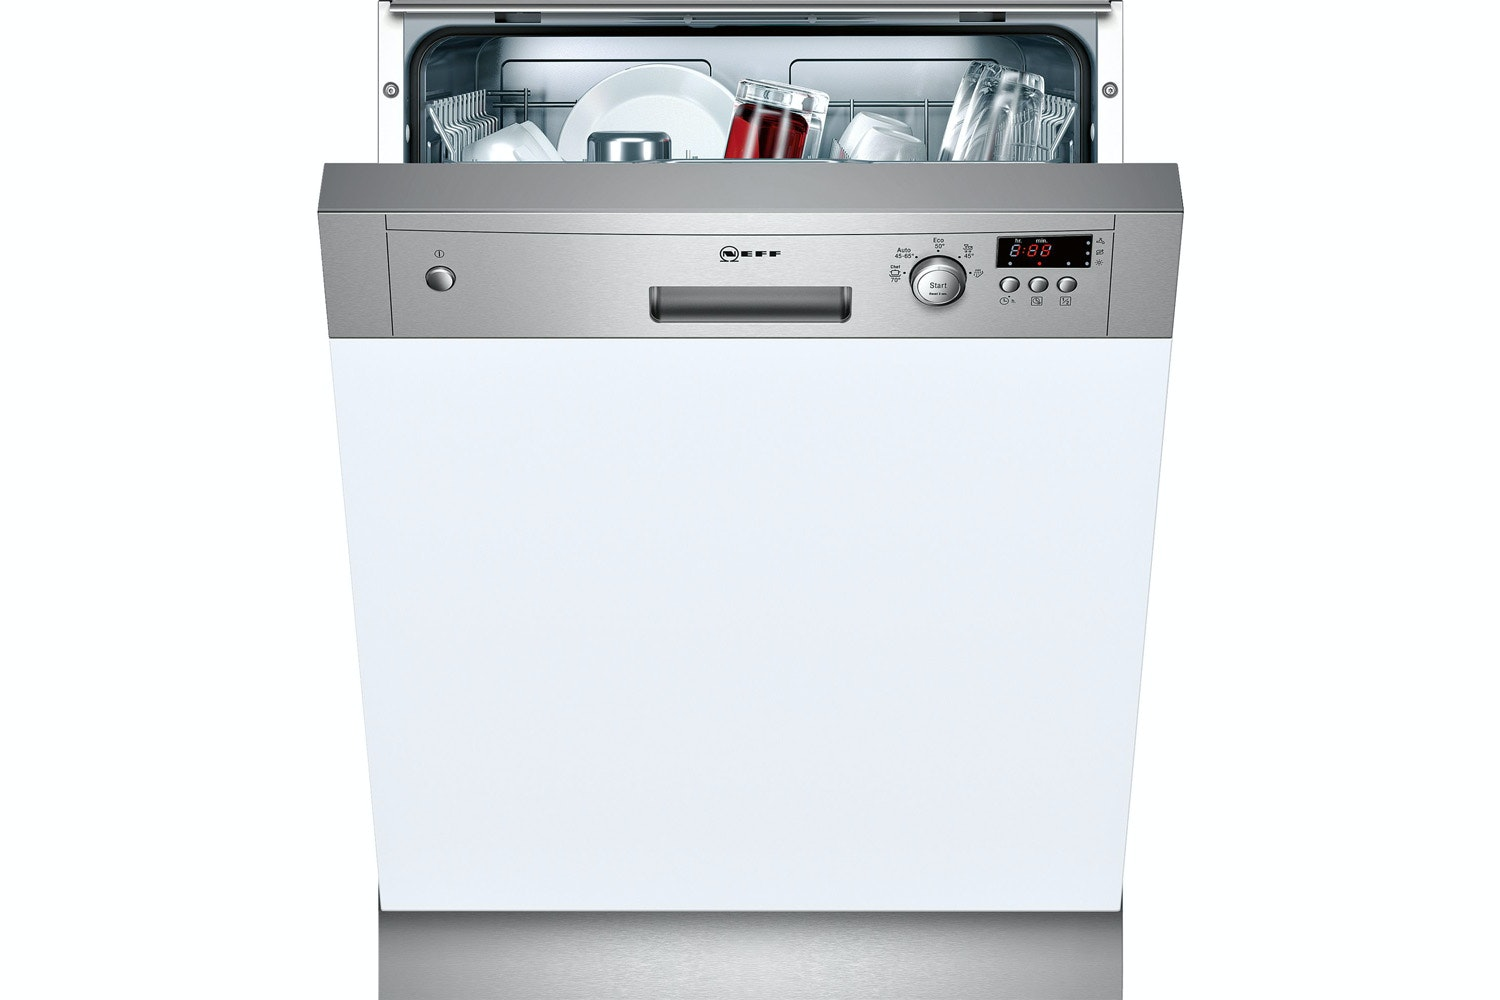 Neff Semi Integrated Dishwasher | 12 Place | S41E50N1GB